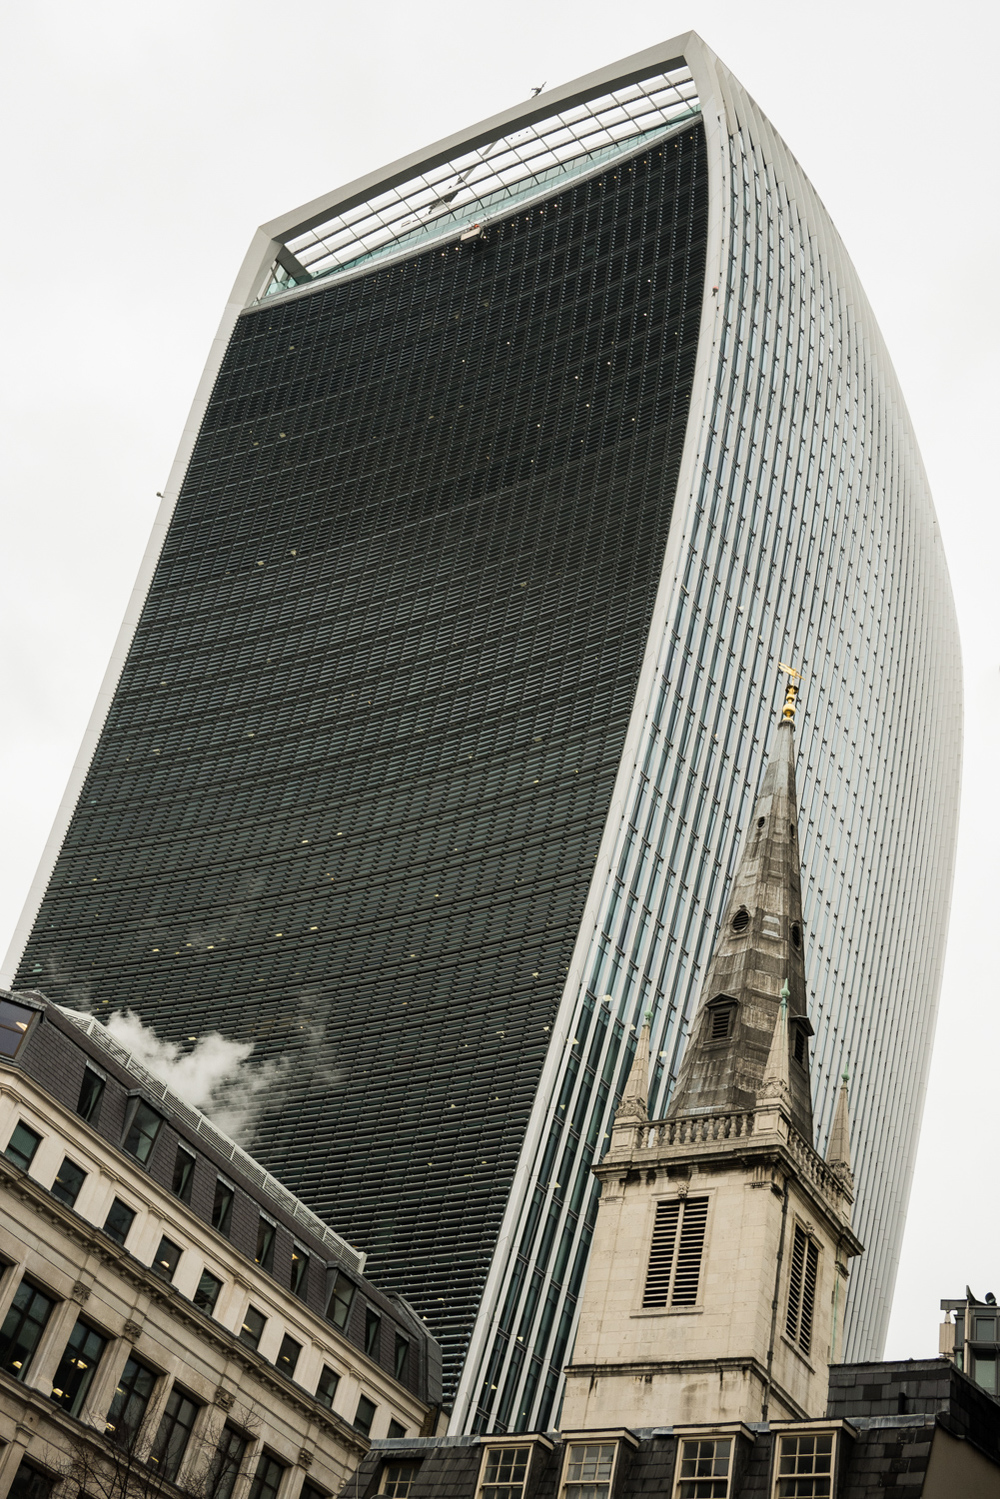 St Margaret's is rather dominated by the 'walkie talkie' building from certain angles